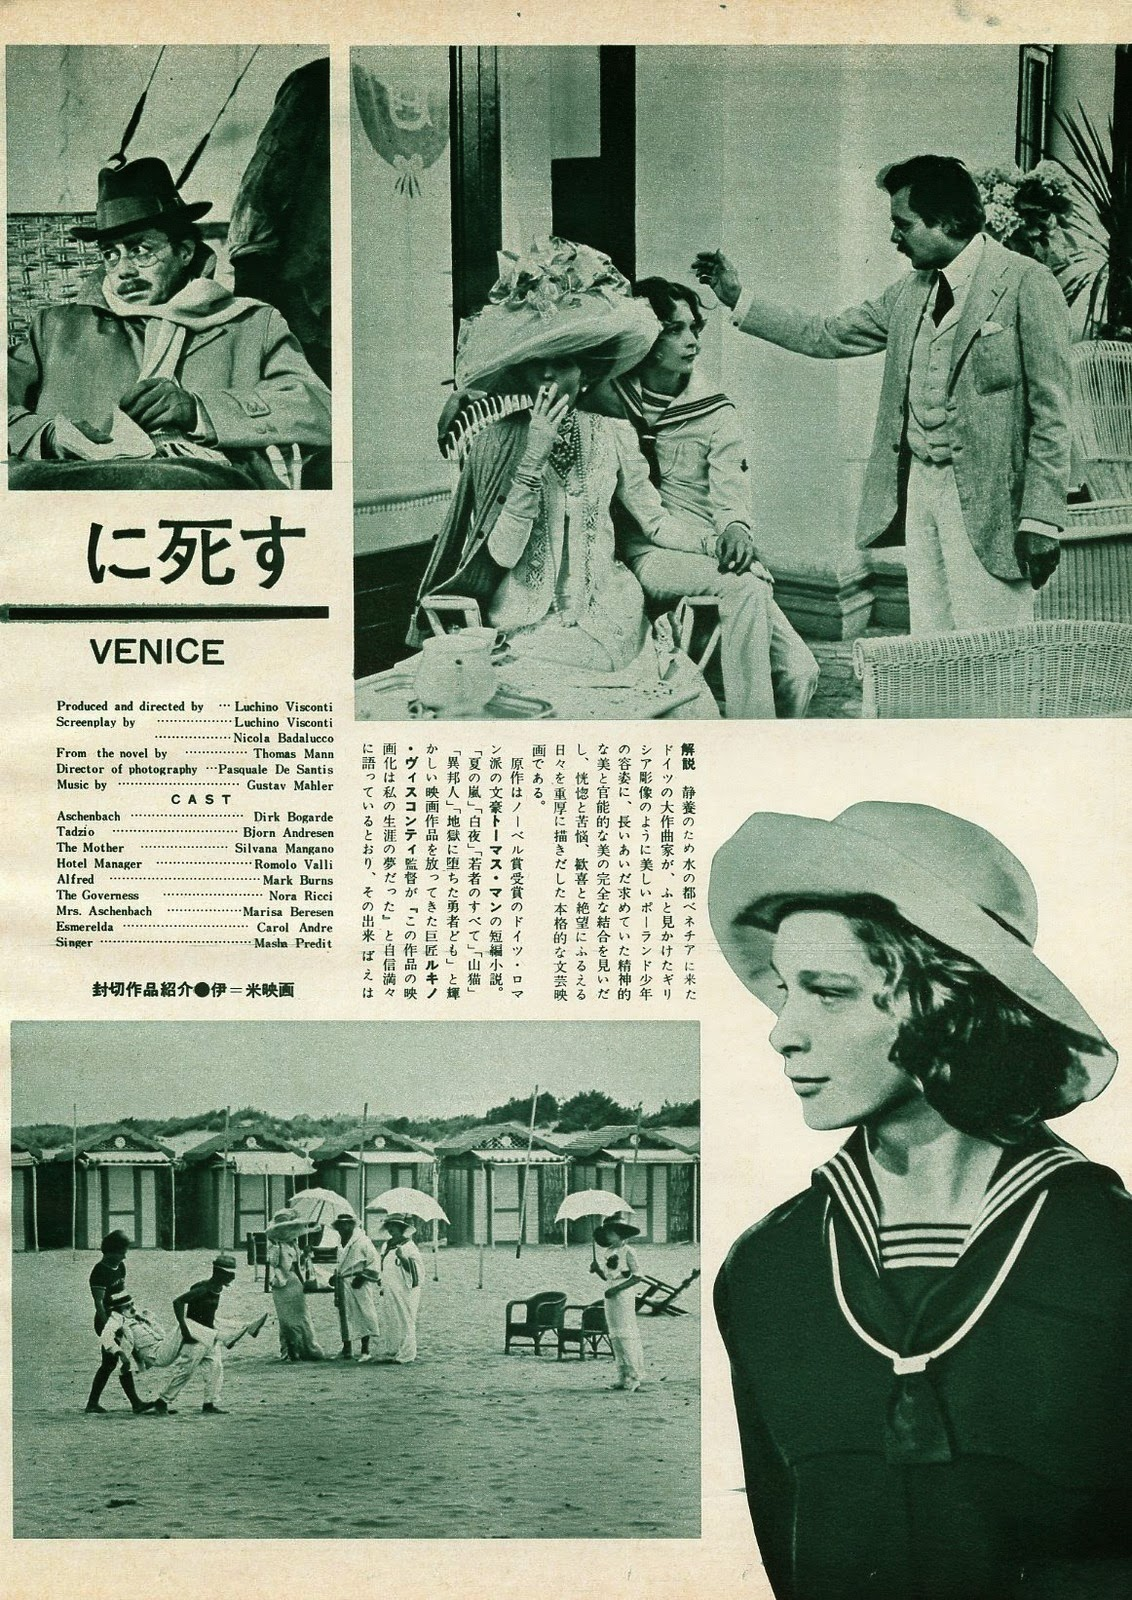 The movie'DEath in Venice' made its appearance in a Japanese media newspaper. Still photos from the movies were also displayed in the picture